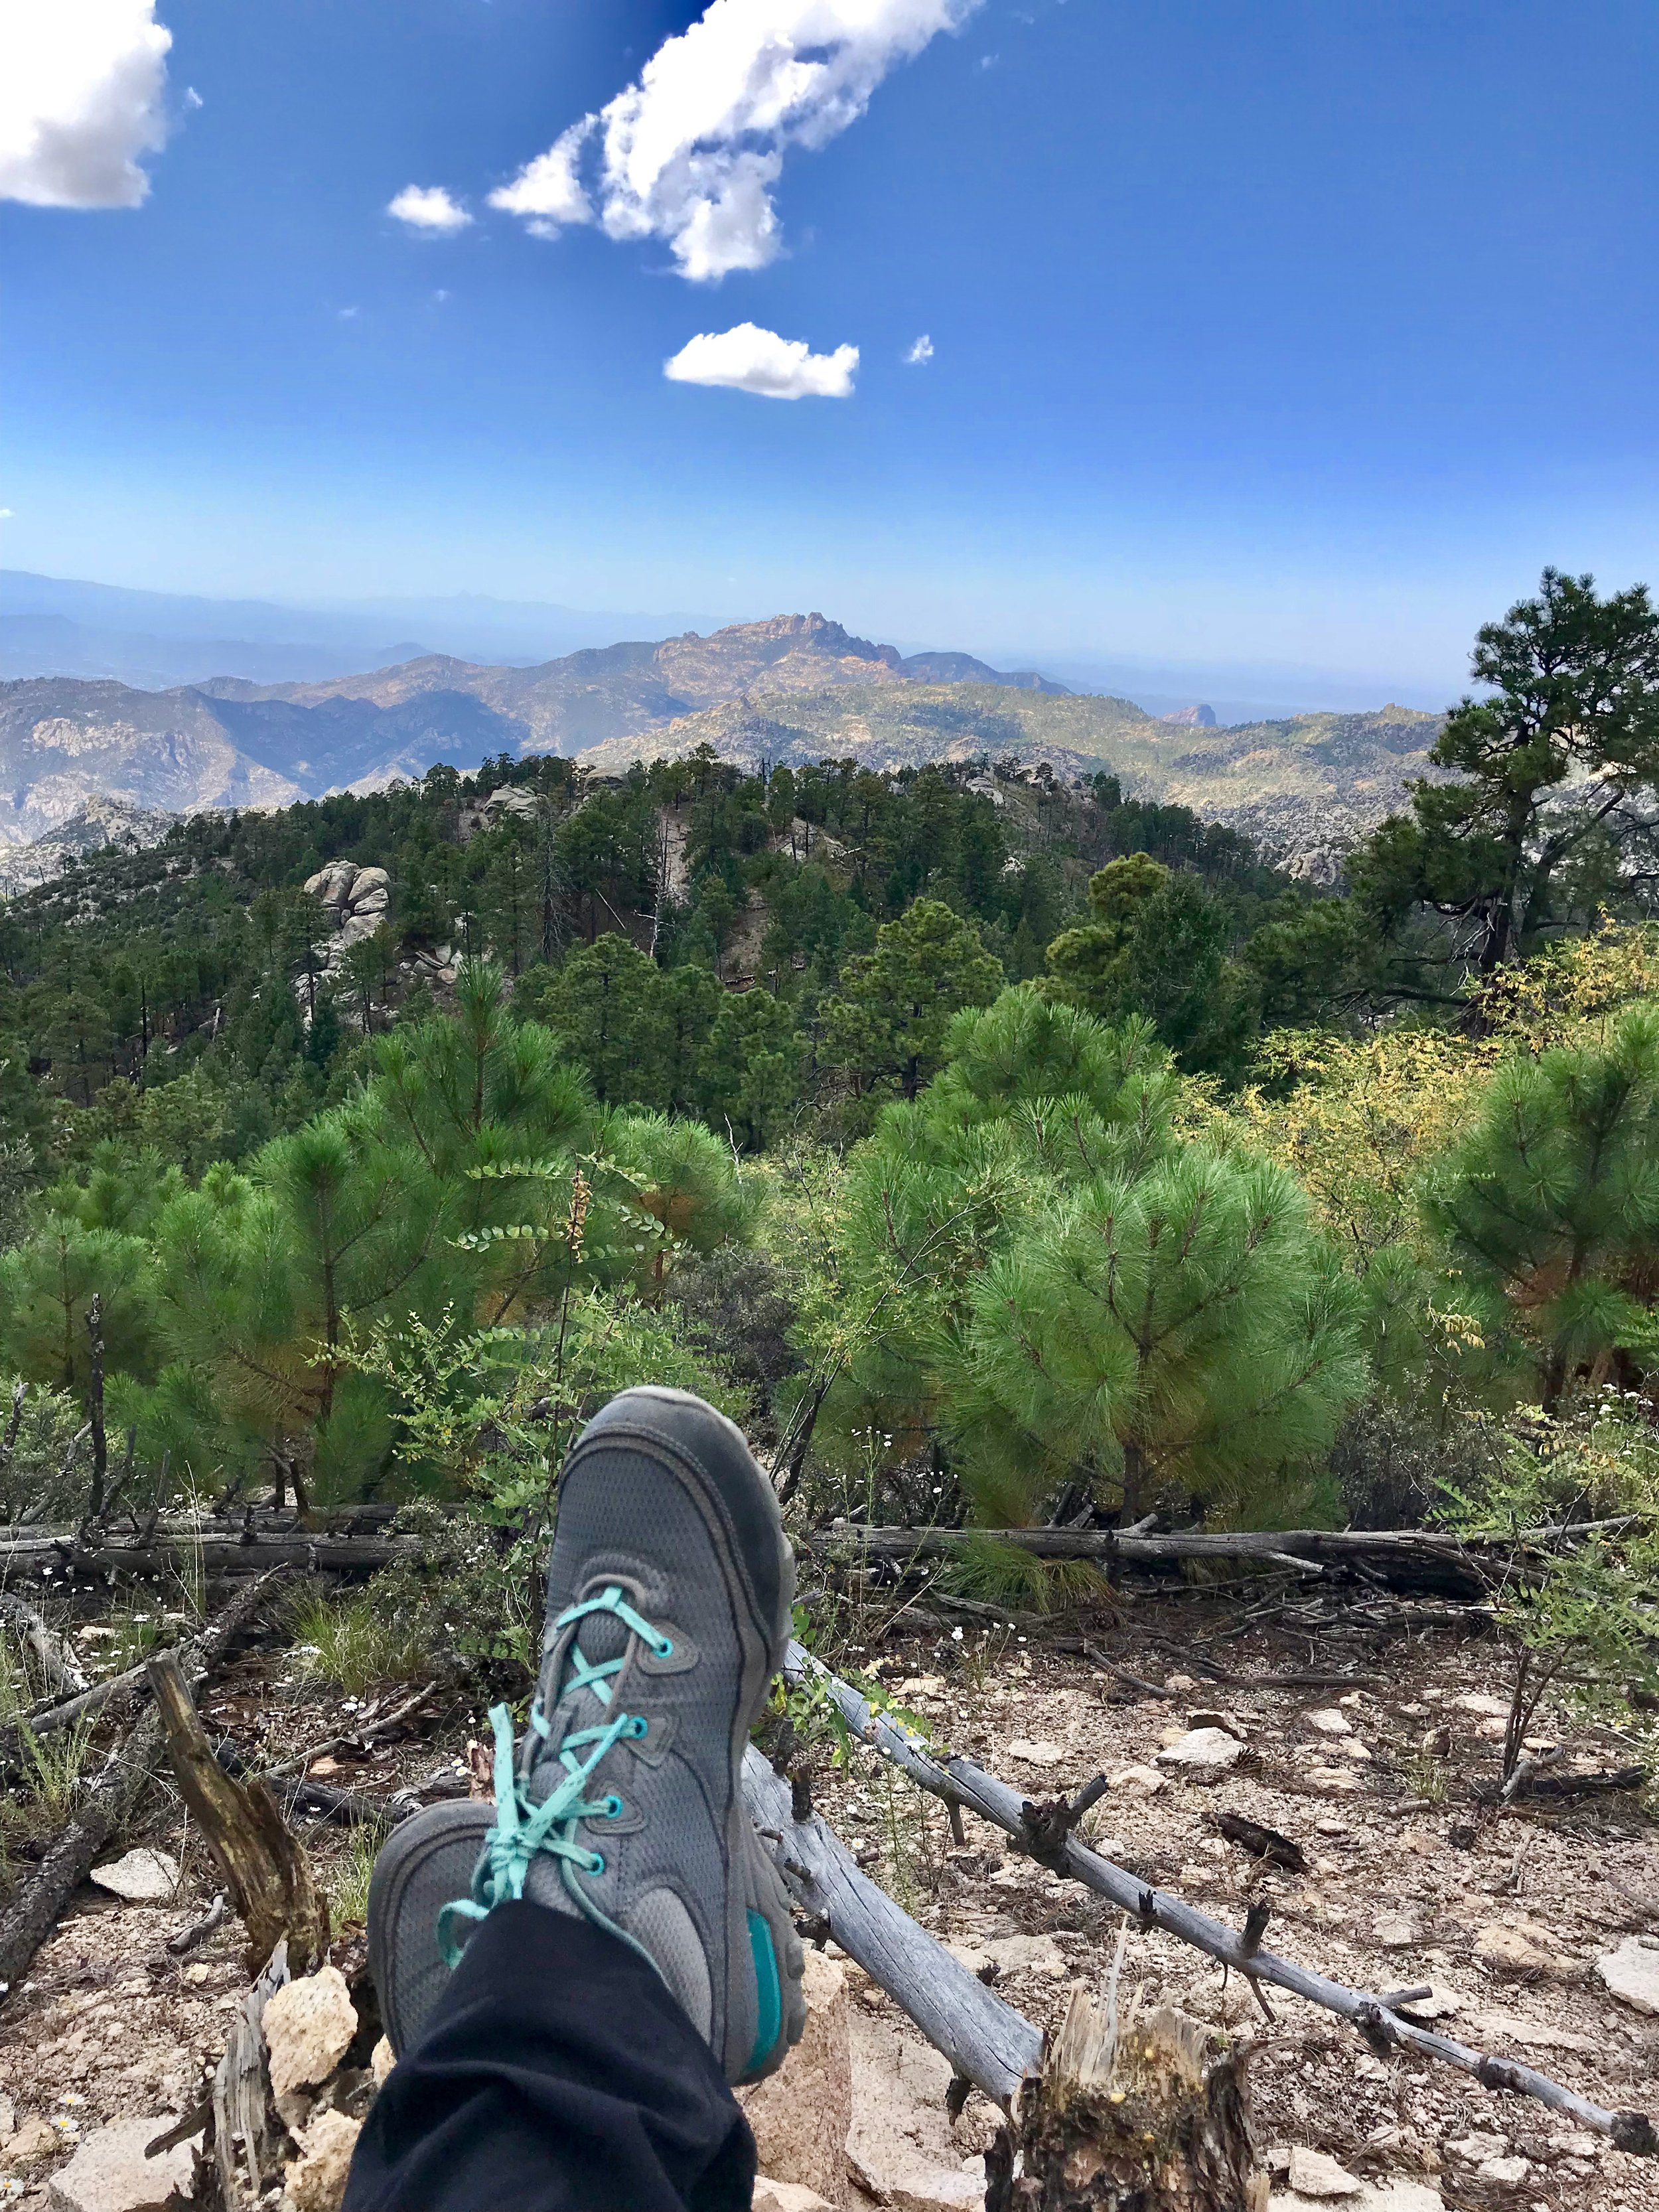 Taking a break on top of Mt. Lemmon